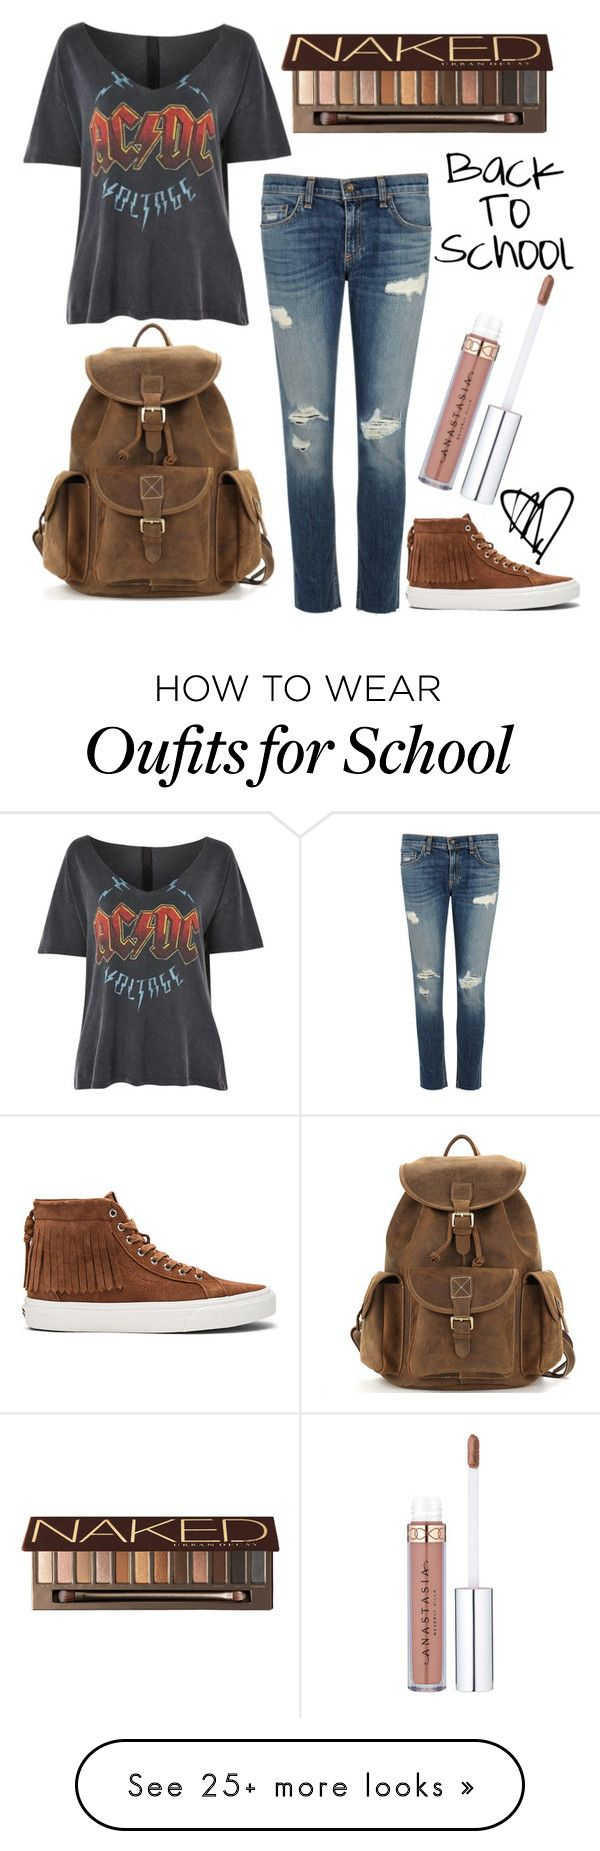 """""""Back to School 2017"""" by lindseylyonss on Polyvore featuring Topshop, rag & bone/JEAN, Vans and Urban Decay"""